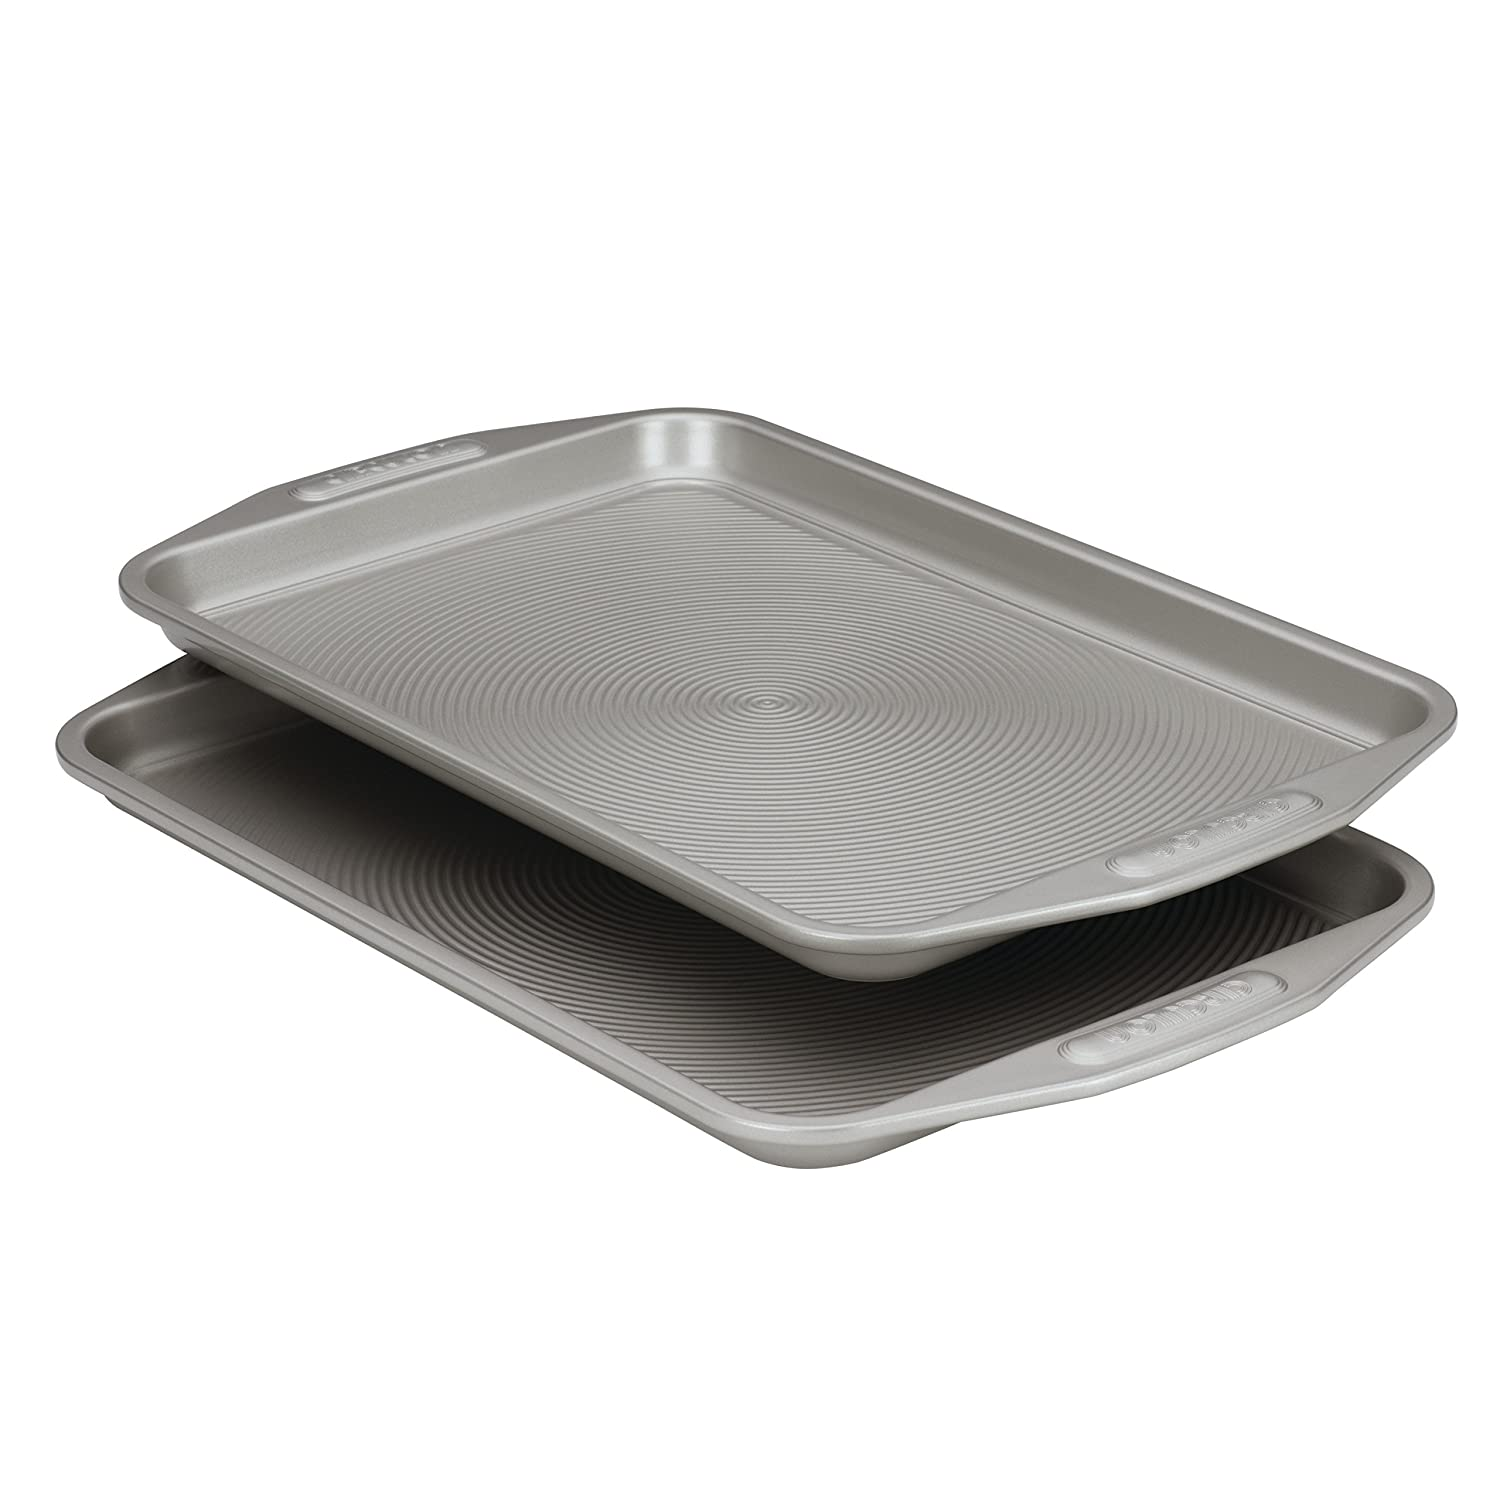 Circulon Nonstick Bakeware 10-Inch-by-15-Inch Cookie Baking Pan, 2-Piece Set Meyer 57893